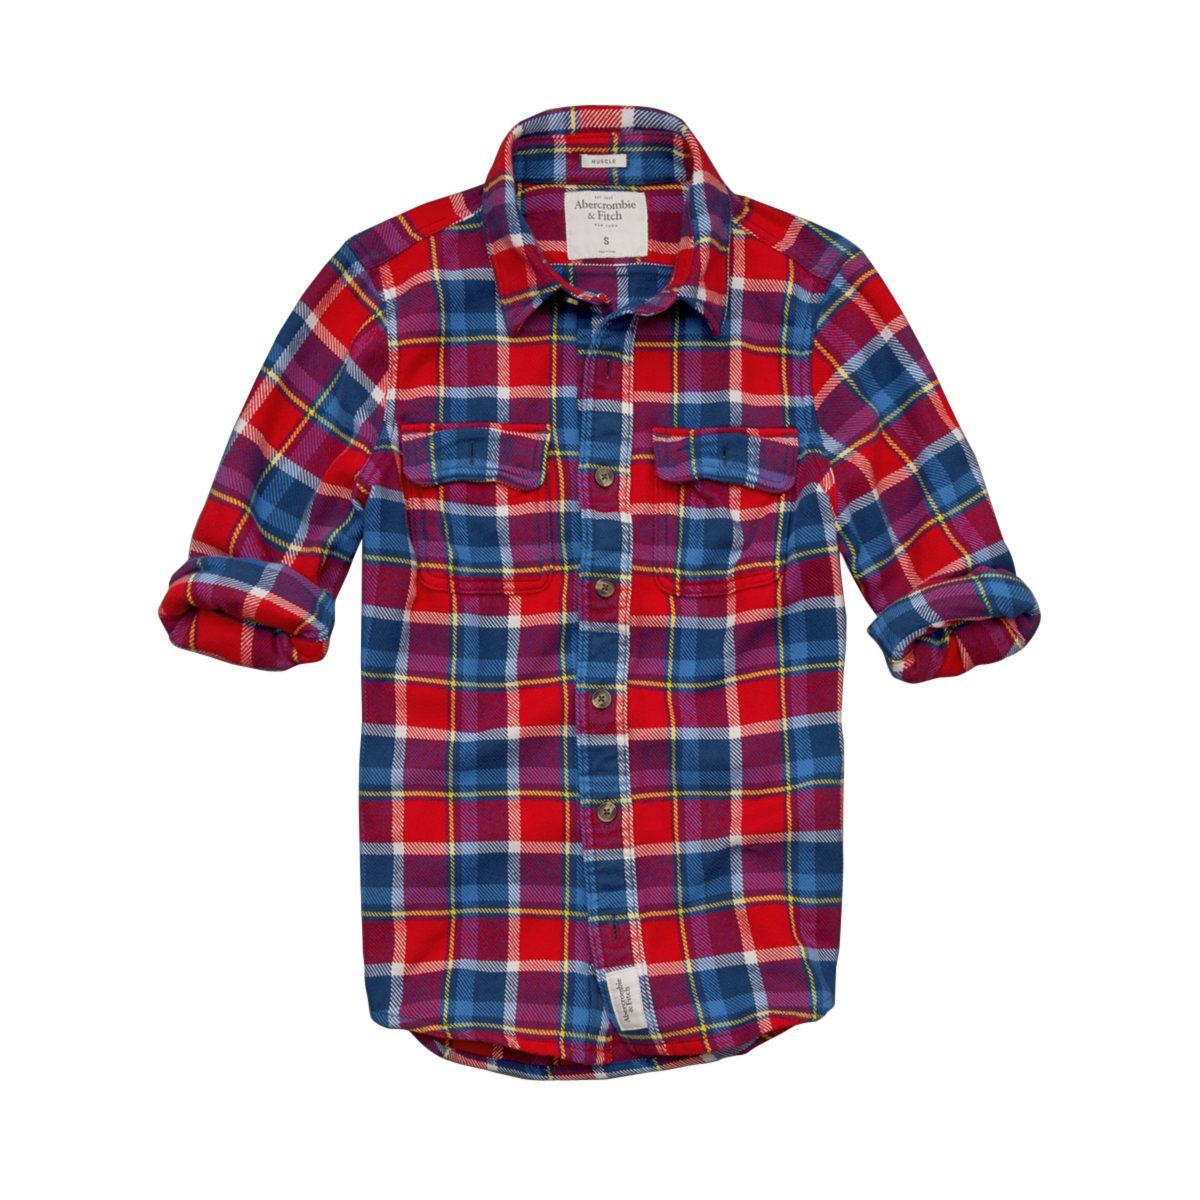 Red flannel shirts  Abercrombie u Fitch Slide Brook Flannel Shirt  CHIC u SPORTY FALL